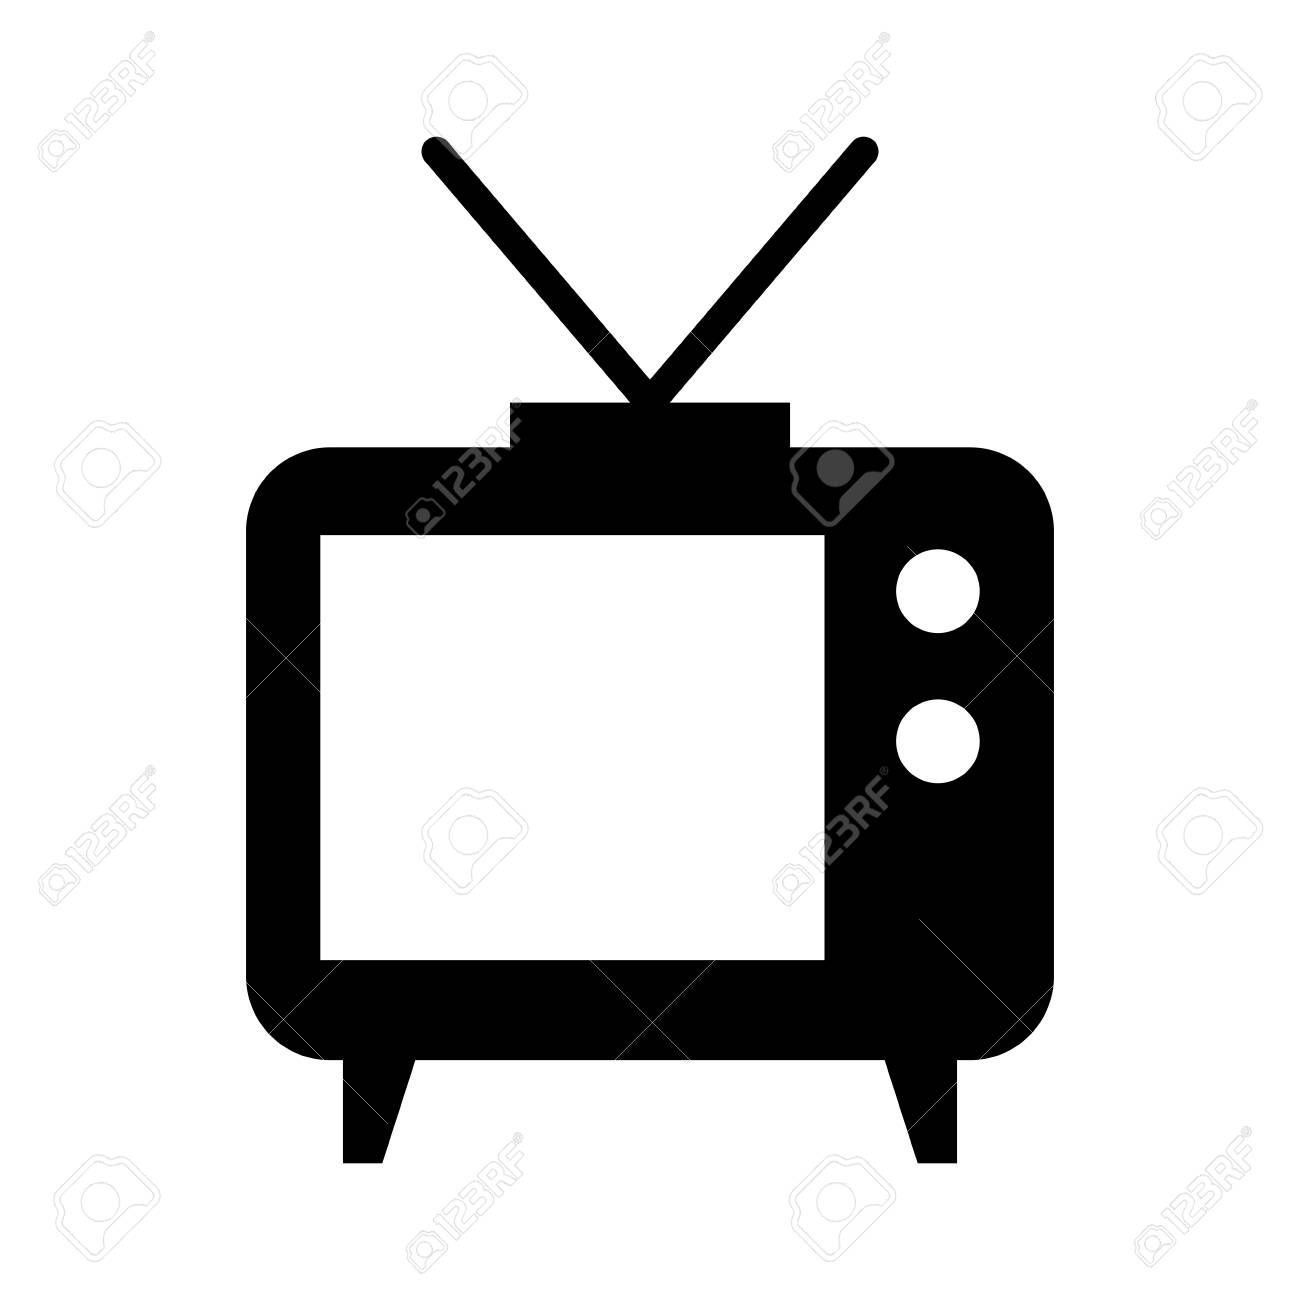 Big old television icon vector illustration design isolated - 81136743